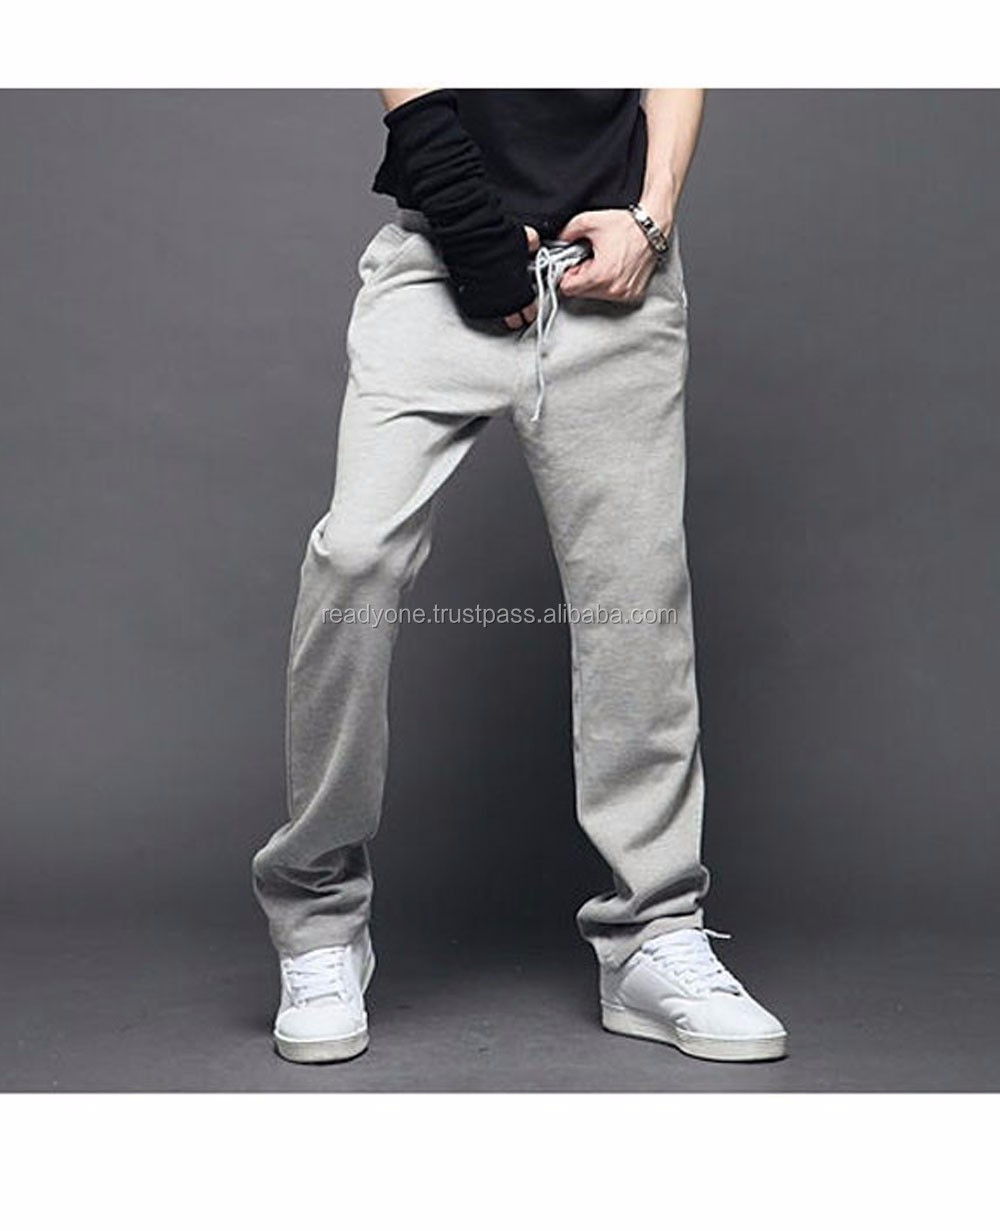 Pantalones Deportivos Para Hombre Pantalon Para Correr Correr Correr Buy Wholesale Fashion Man Custom Checkered Fitness Apparel Wear Sweat High Quality Bodybuilding Fitness Sports Skinny Jogger Men S Running Pants Training Pants Luxe Fitted Bottoms